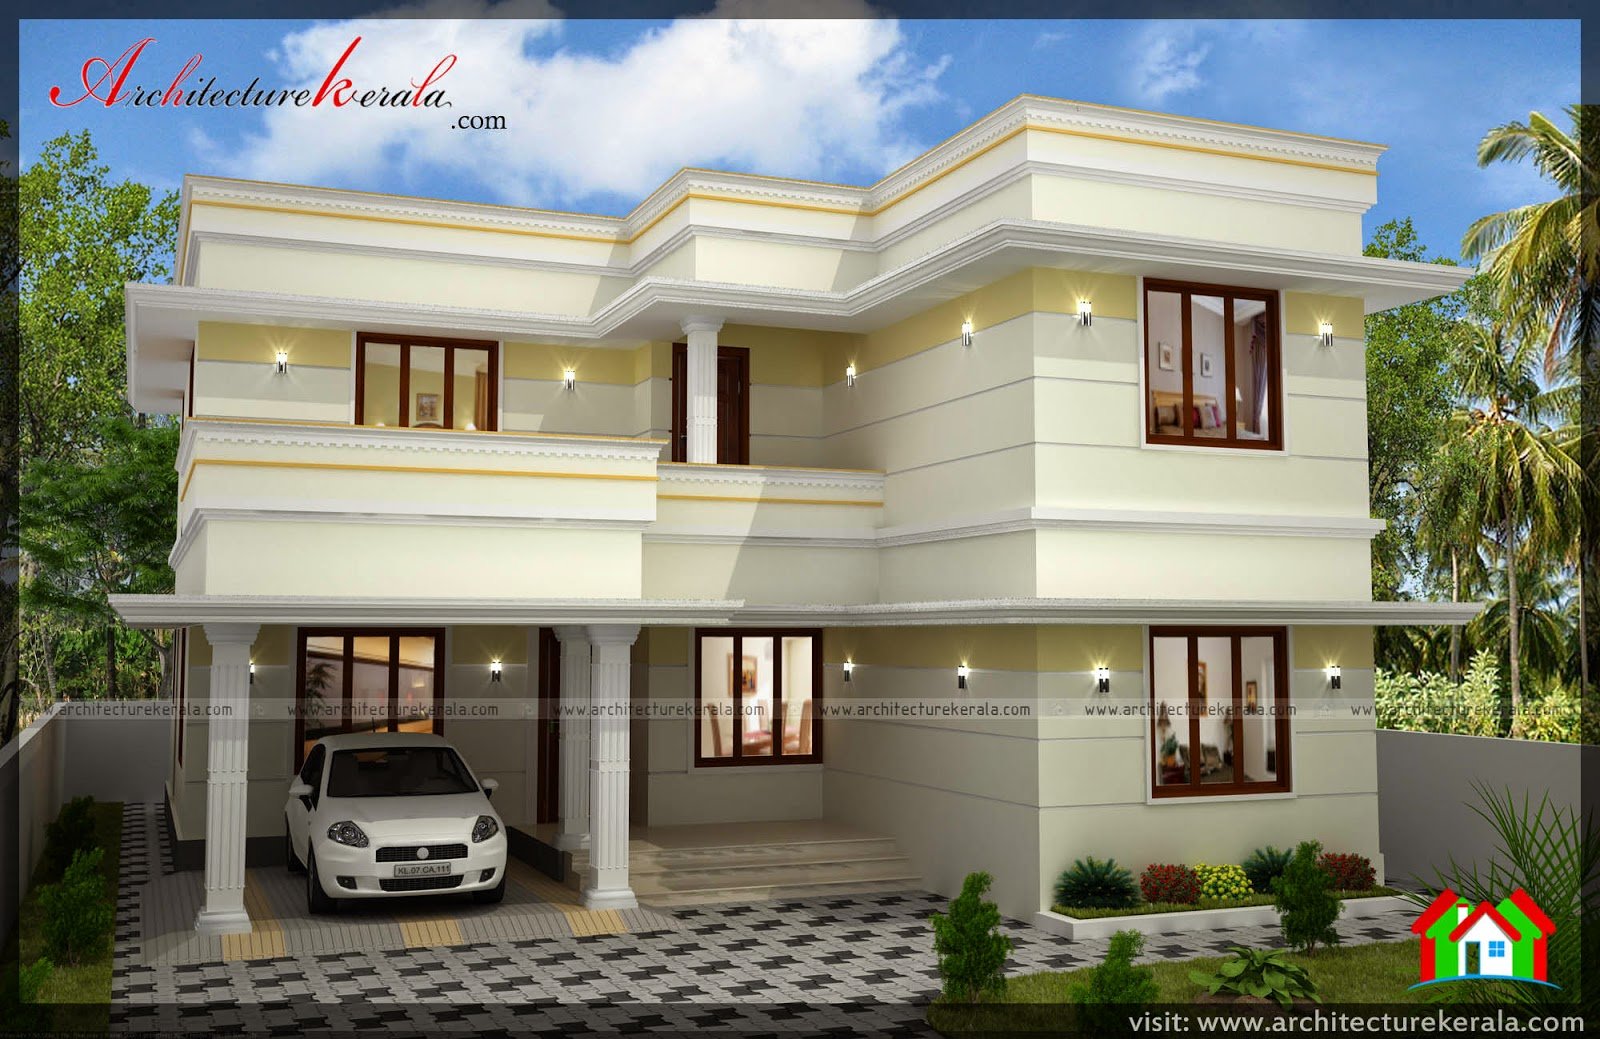 Three bedroom two storey house plan architecture kerala for Simple double storey house plans